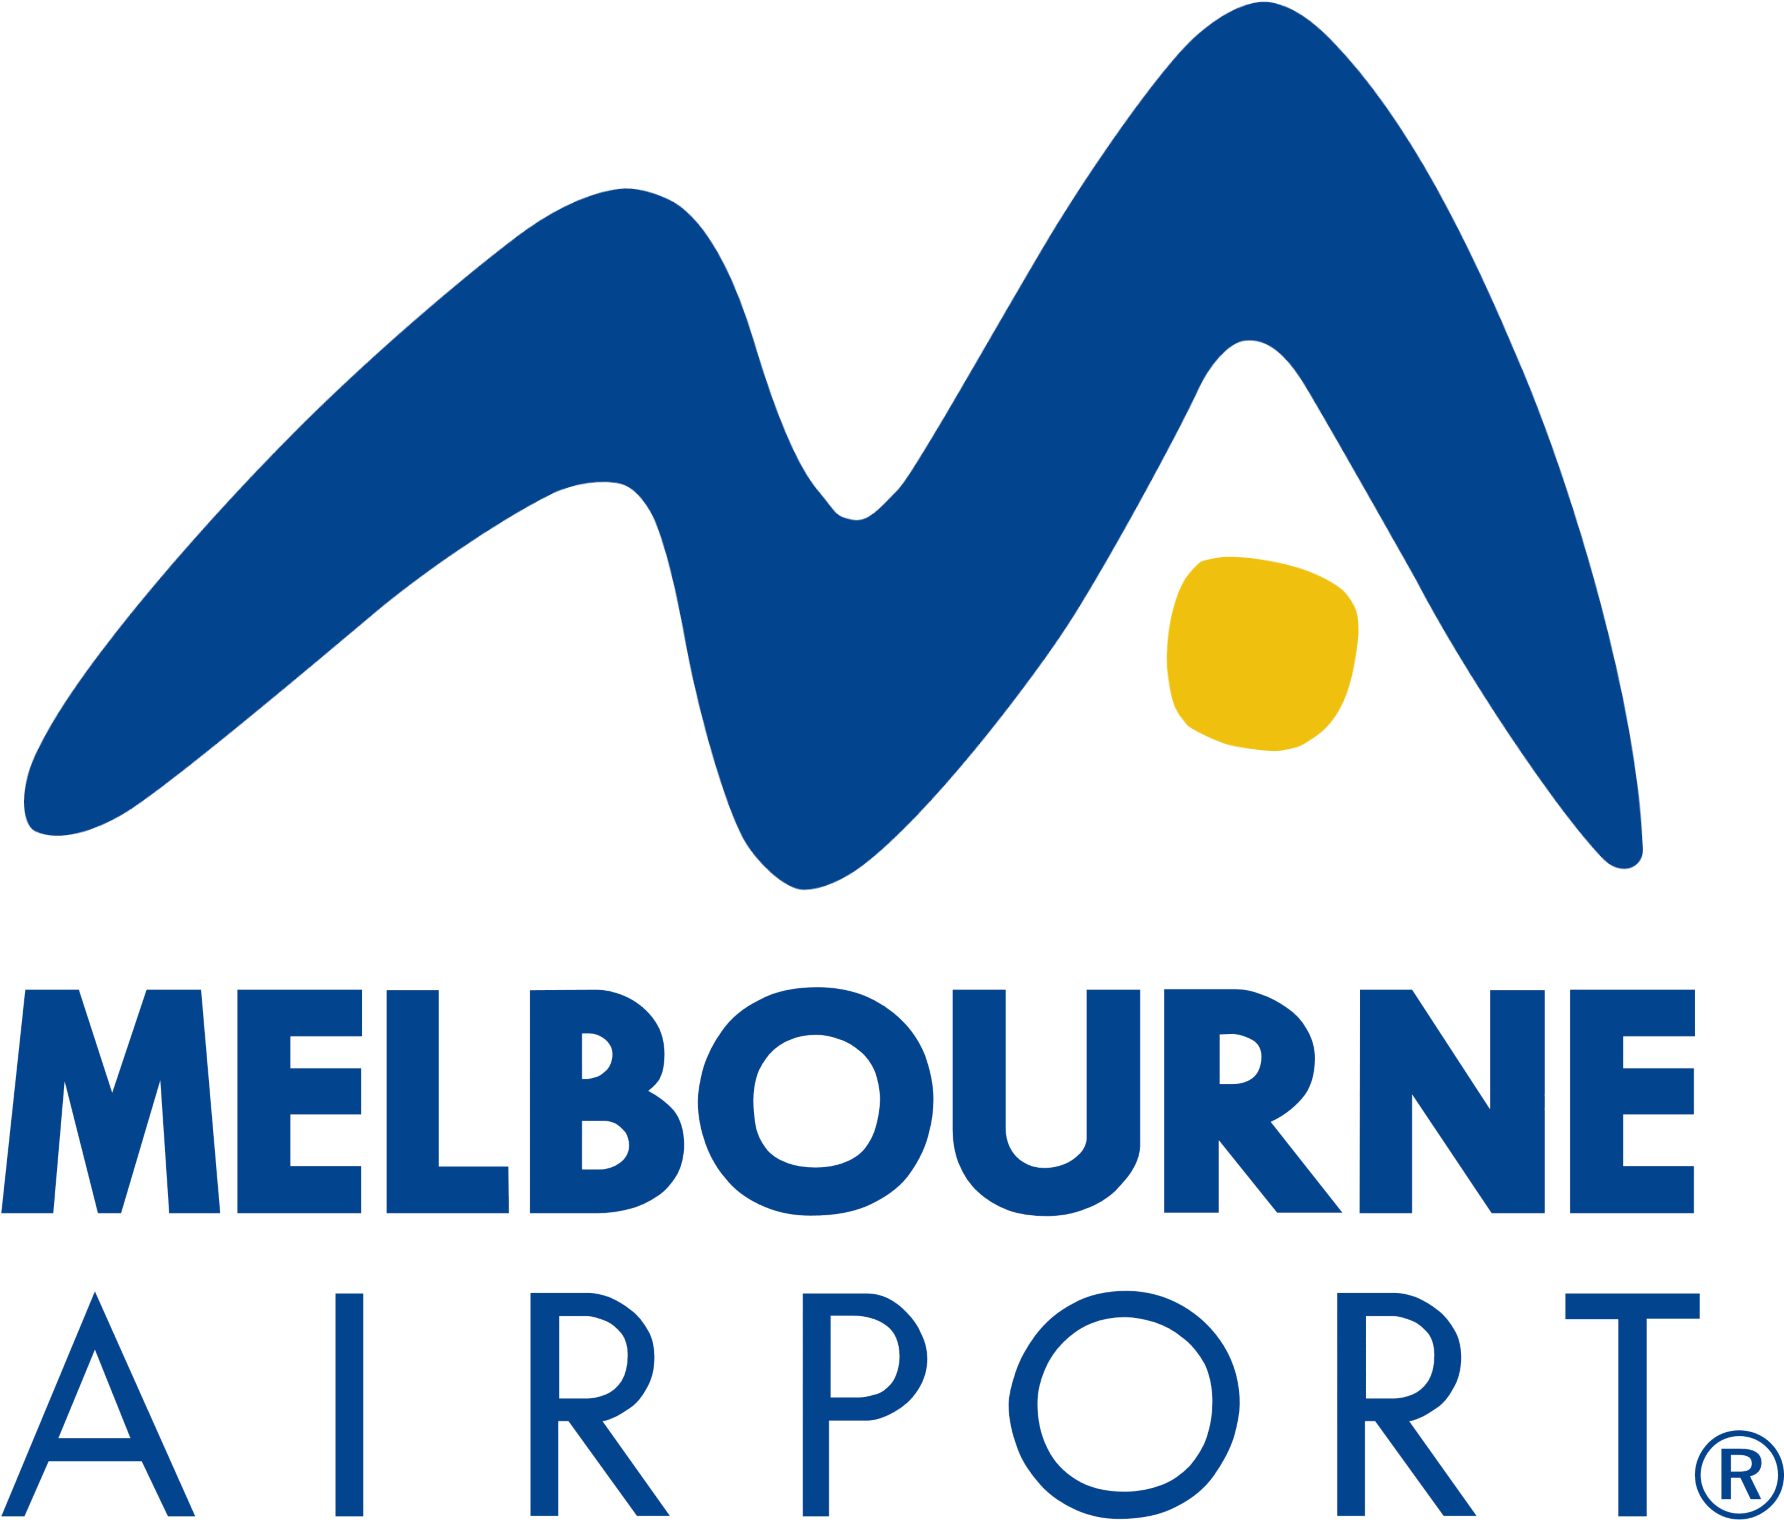 Airport code clipart banner transparent download Melbourne Airport Logo, Logotype - Melbourne Airport Clipart - Full ... banner transparent download